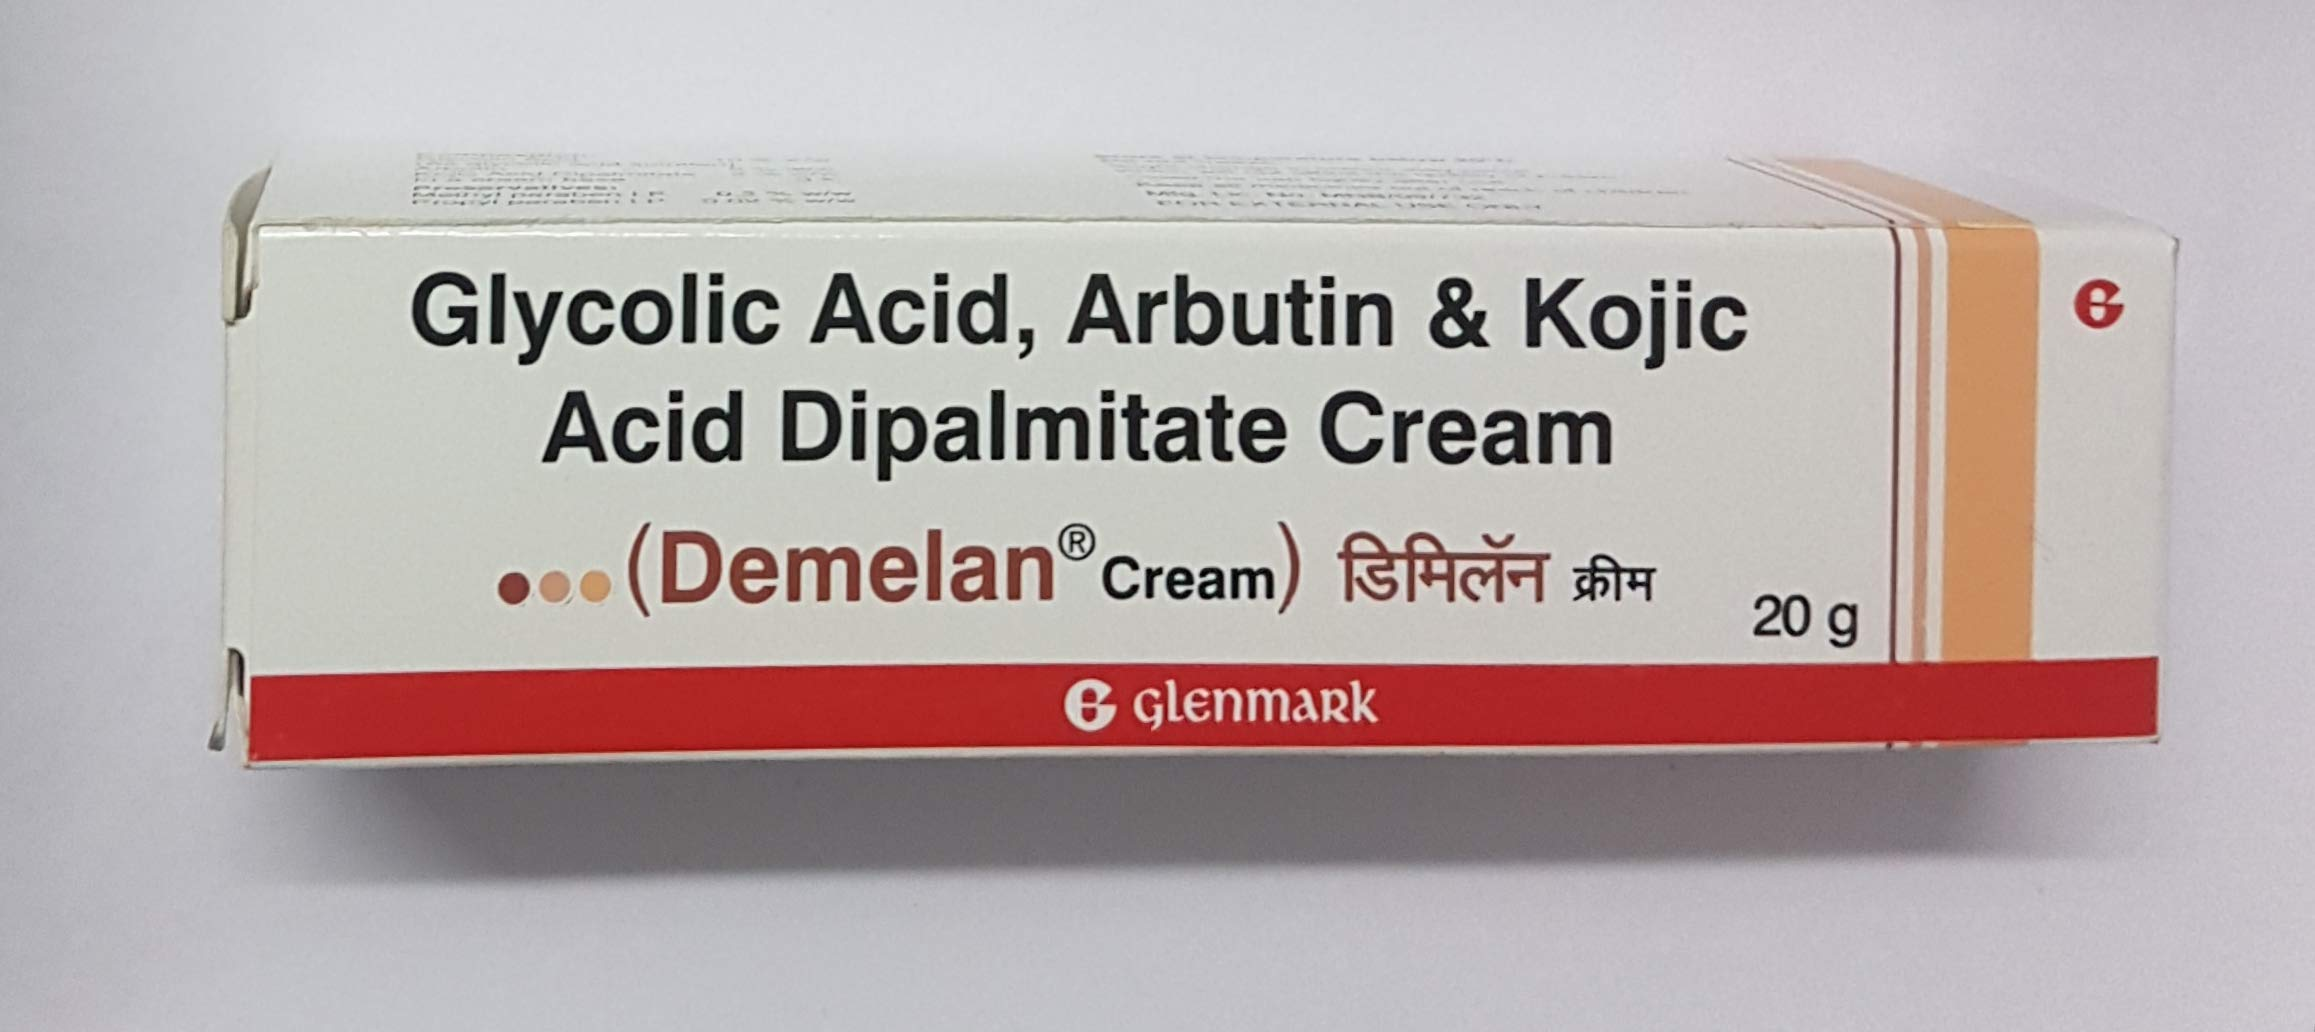 New Pack 20 gm Demelan Cream (Glycolic Acid/Arbutin/Kojic Acid) by glenmark